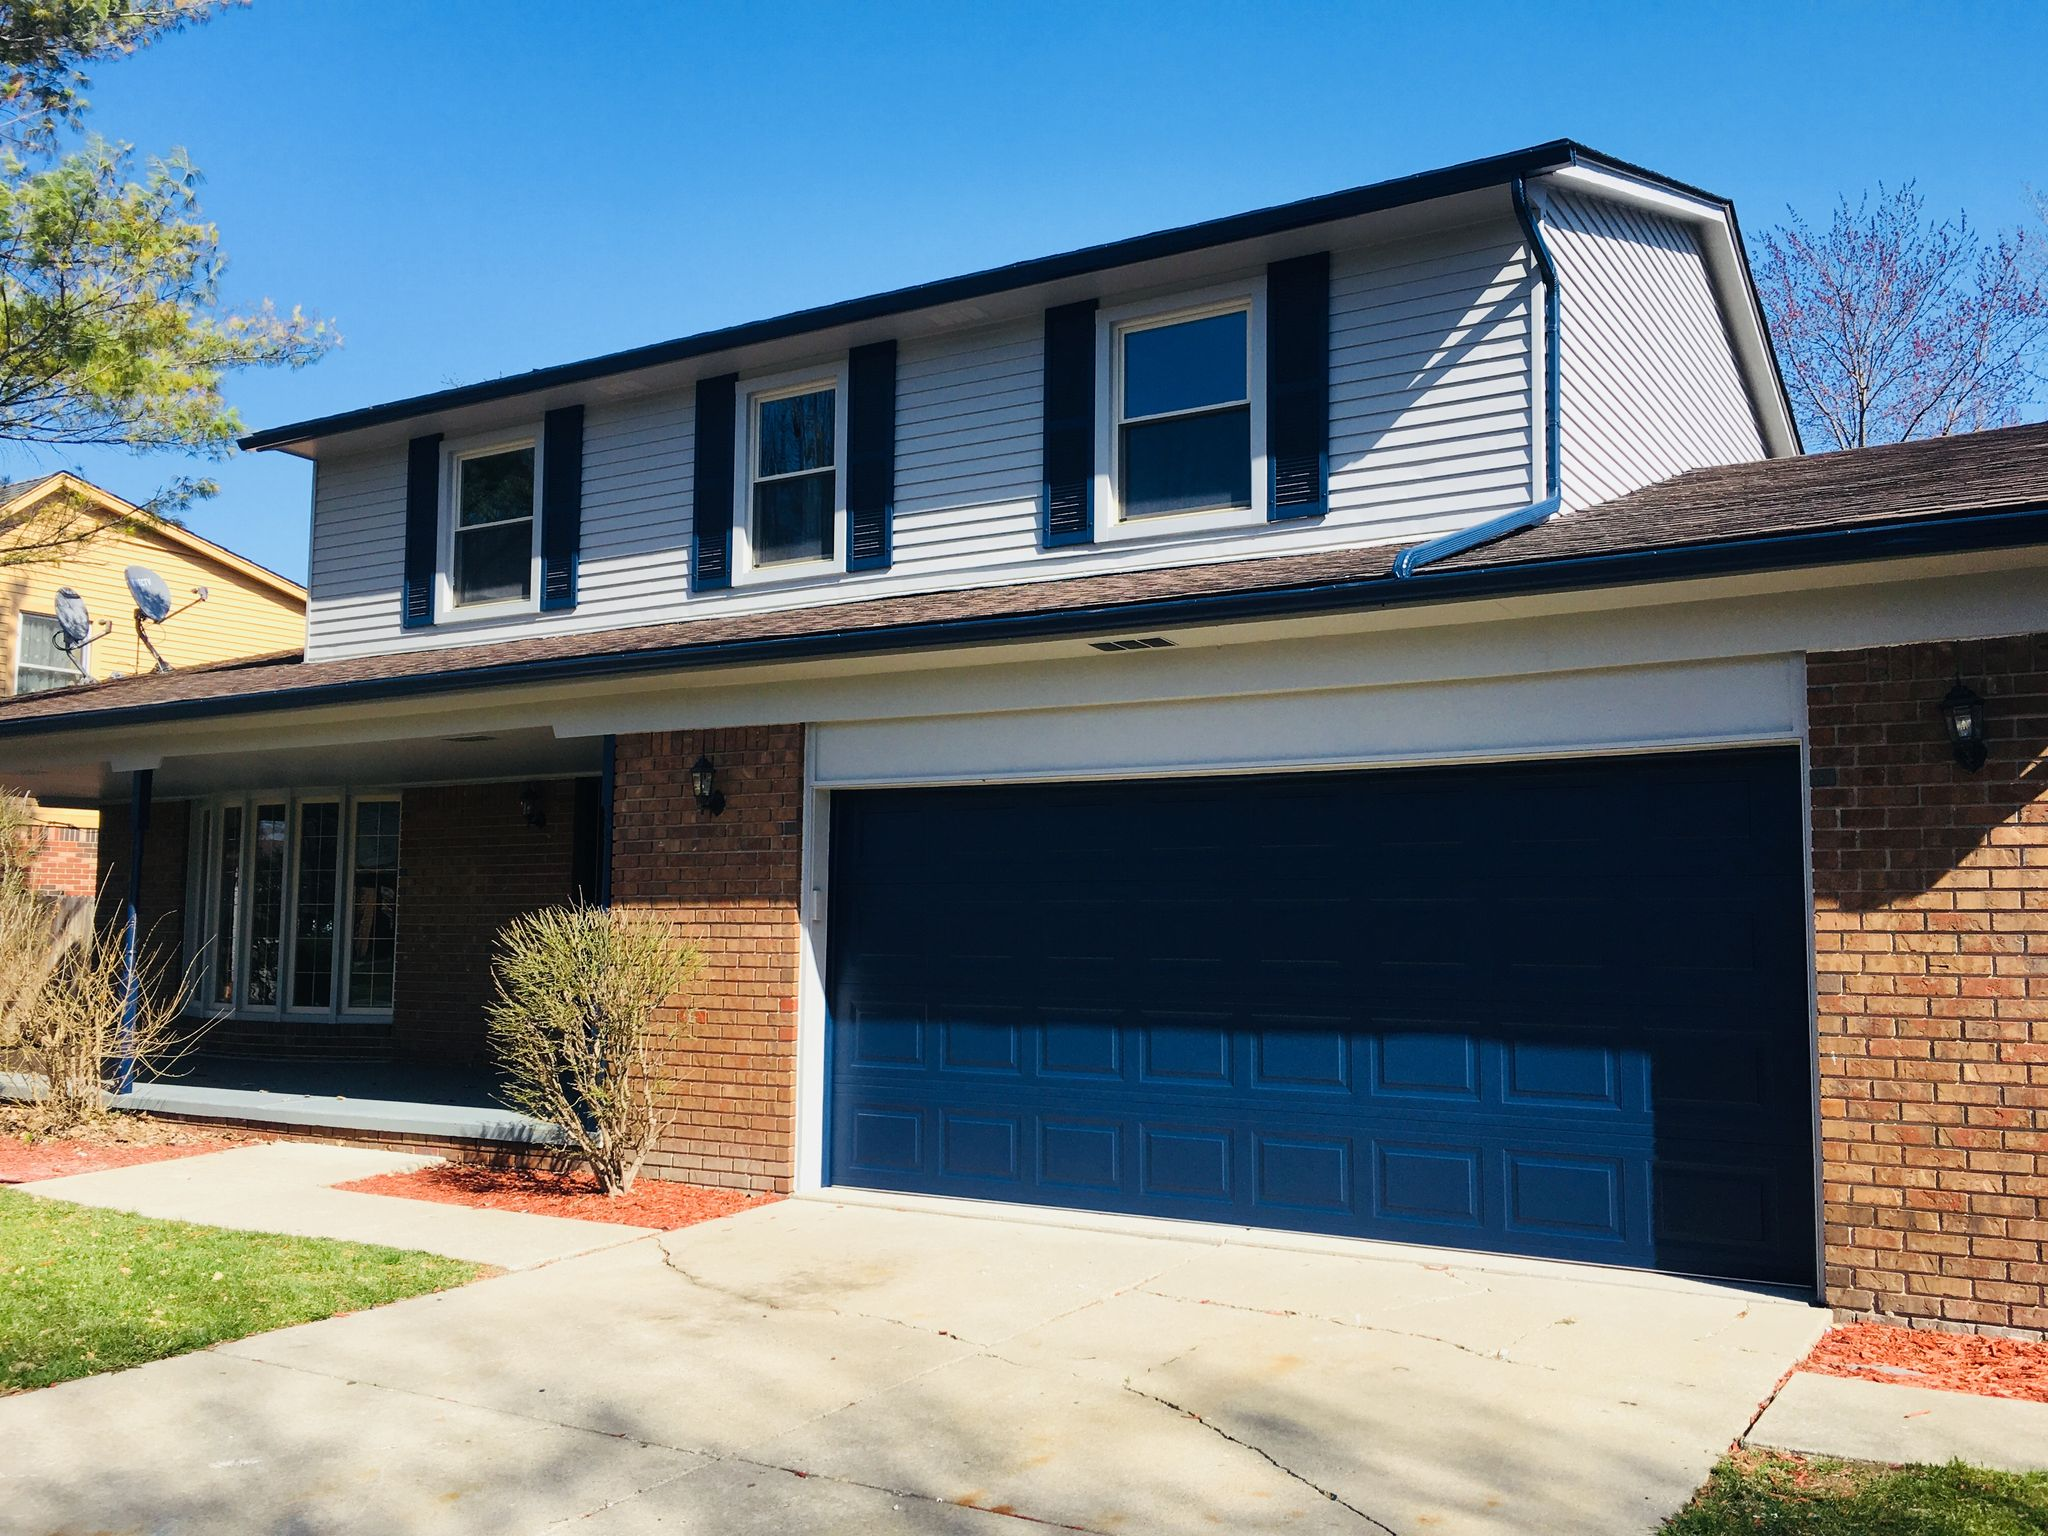 42325 Mayhew Dr For Sale - Sterling Heights, MI | Trulia